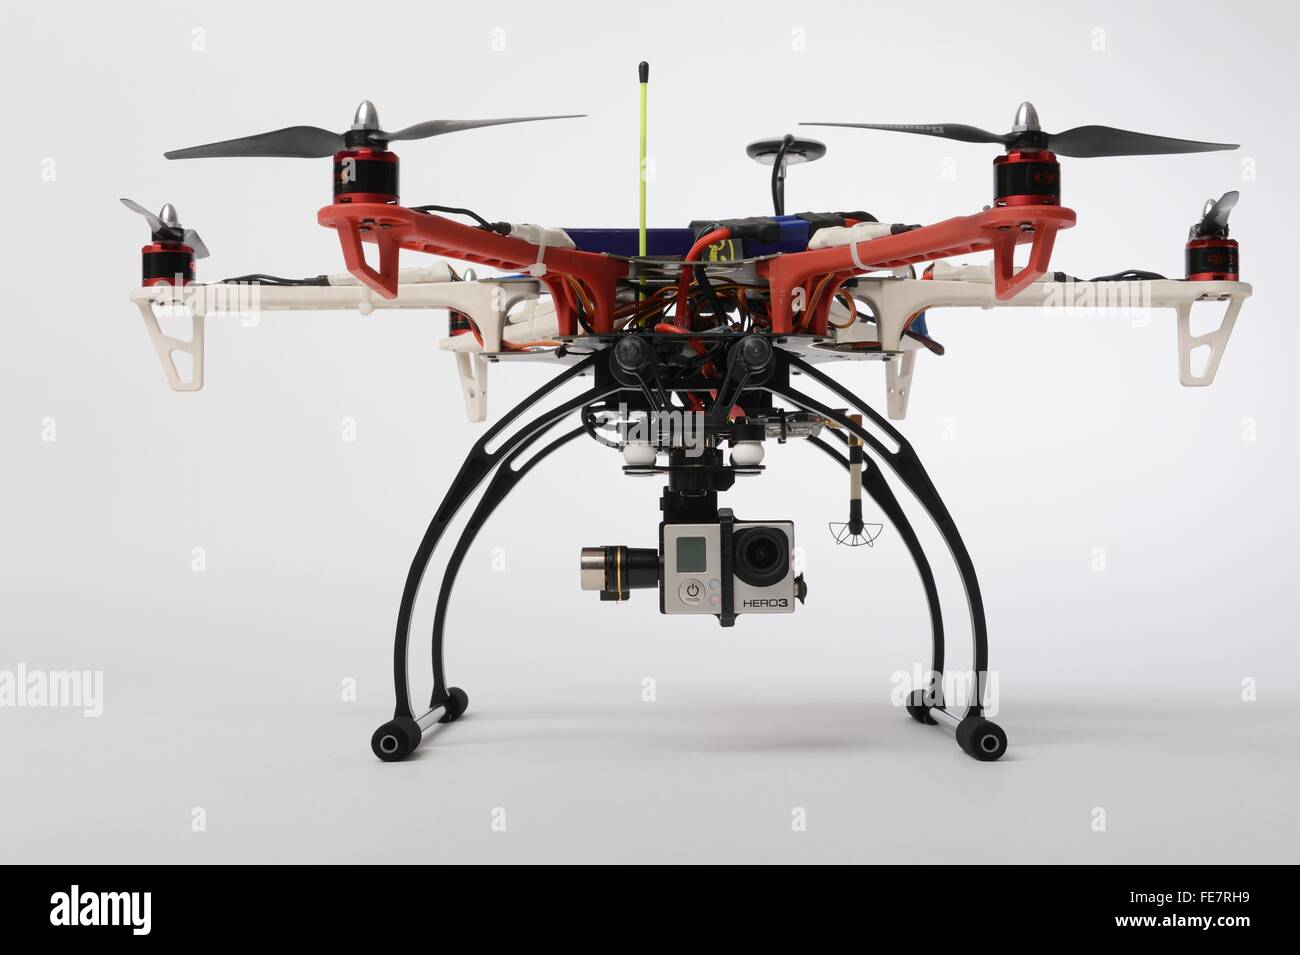 Small multirotor drone of the hexacopter type equipped with a stabilized gimbal holding a GoPro  typically used - Stock Image